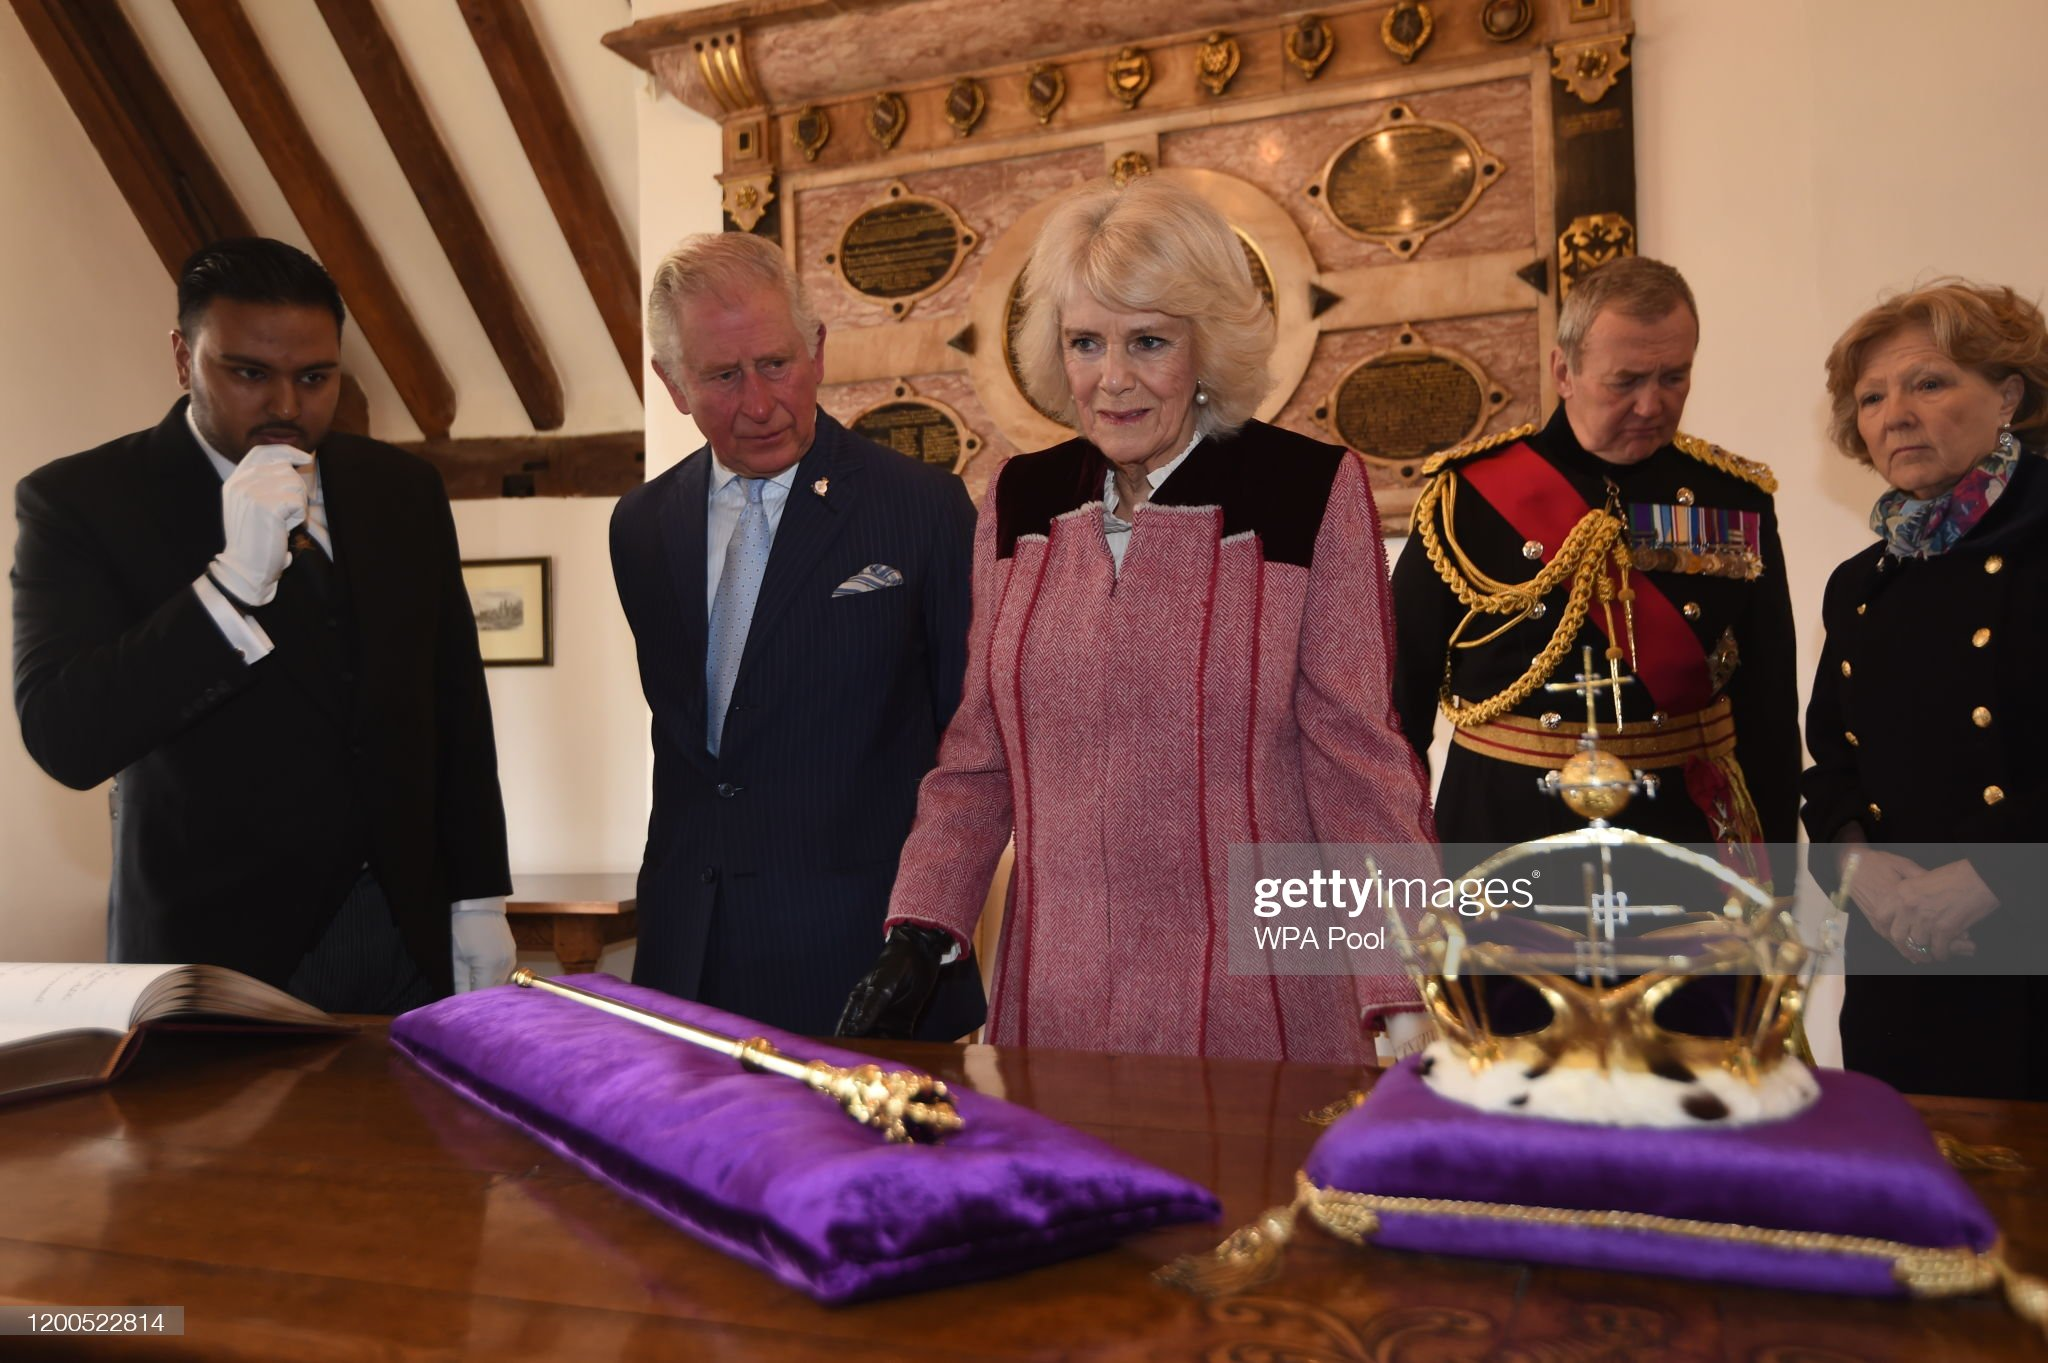 prince-charles-prince-of-wales-and-camilla-duchess-of-cornwall-visit-picture-id1200522814